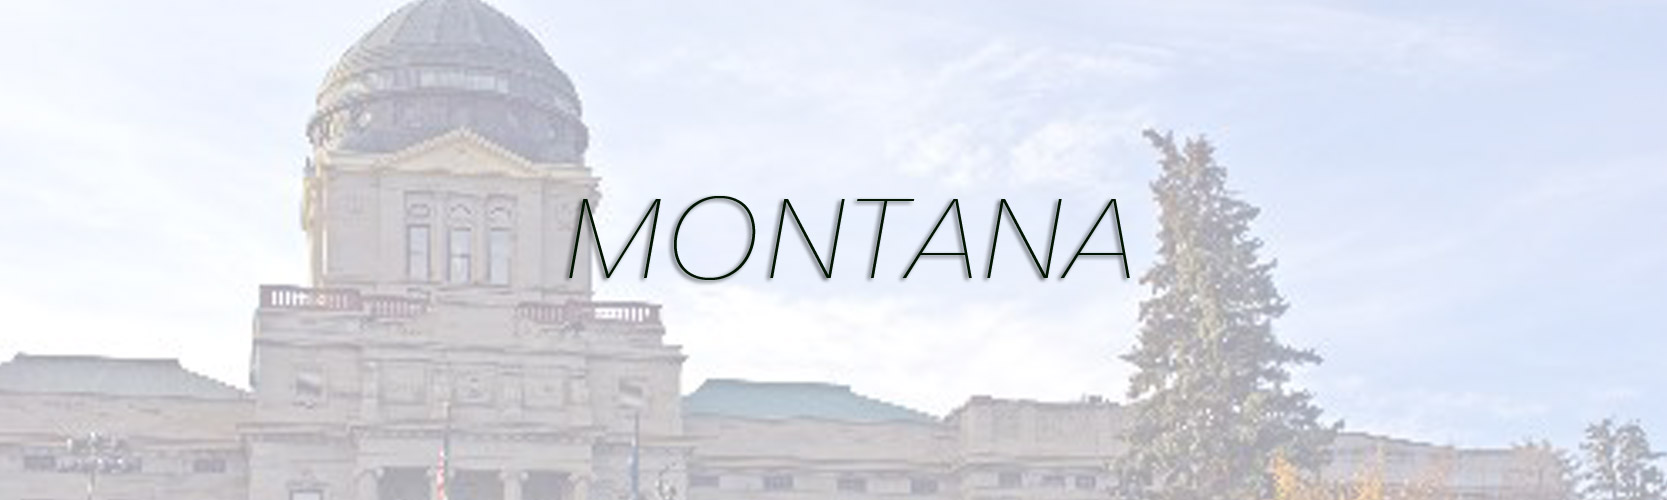 Shipping Futons, Sofa Beds, and Other Futon Shop products to Montana